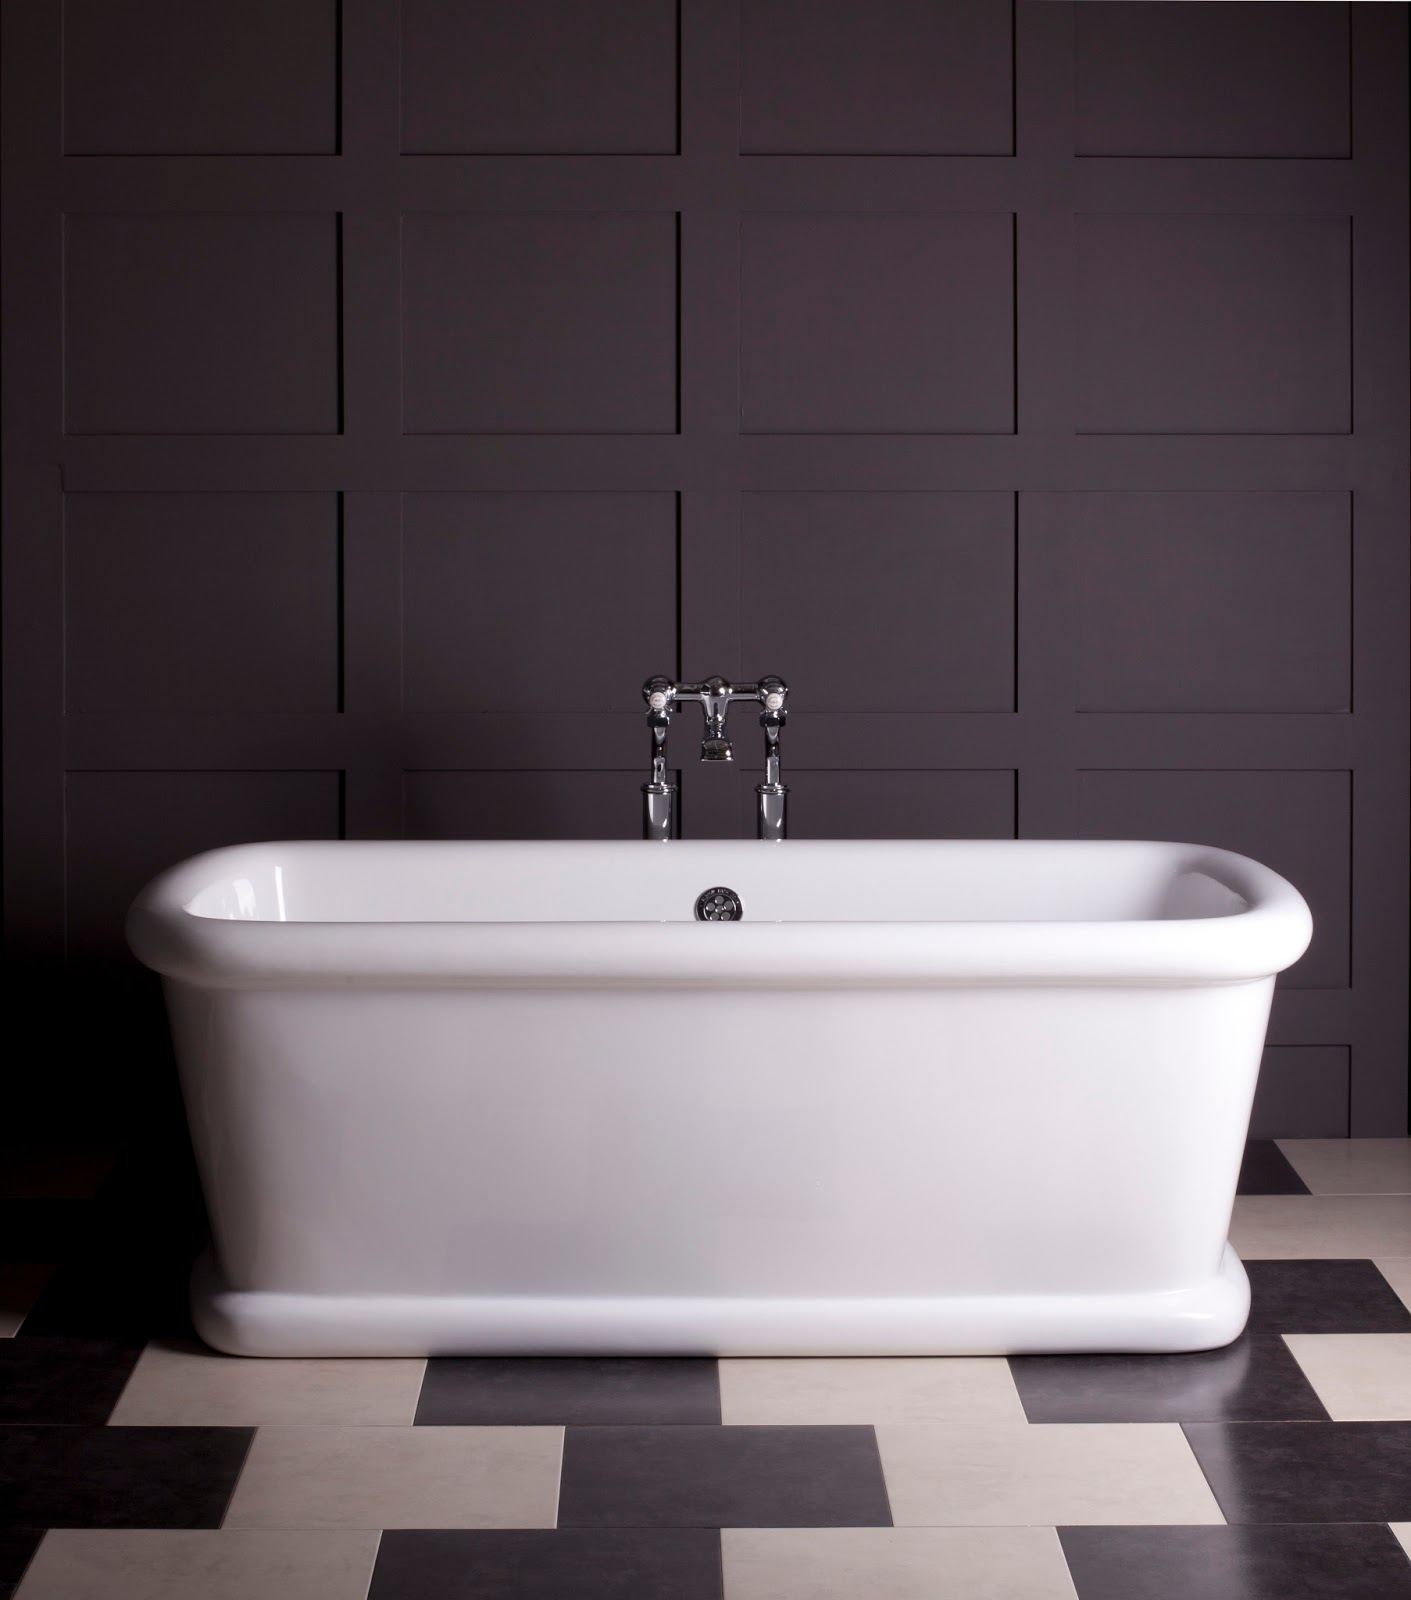 The albion bath company ltd small free standing bath tubs for Free standing soaking tub